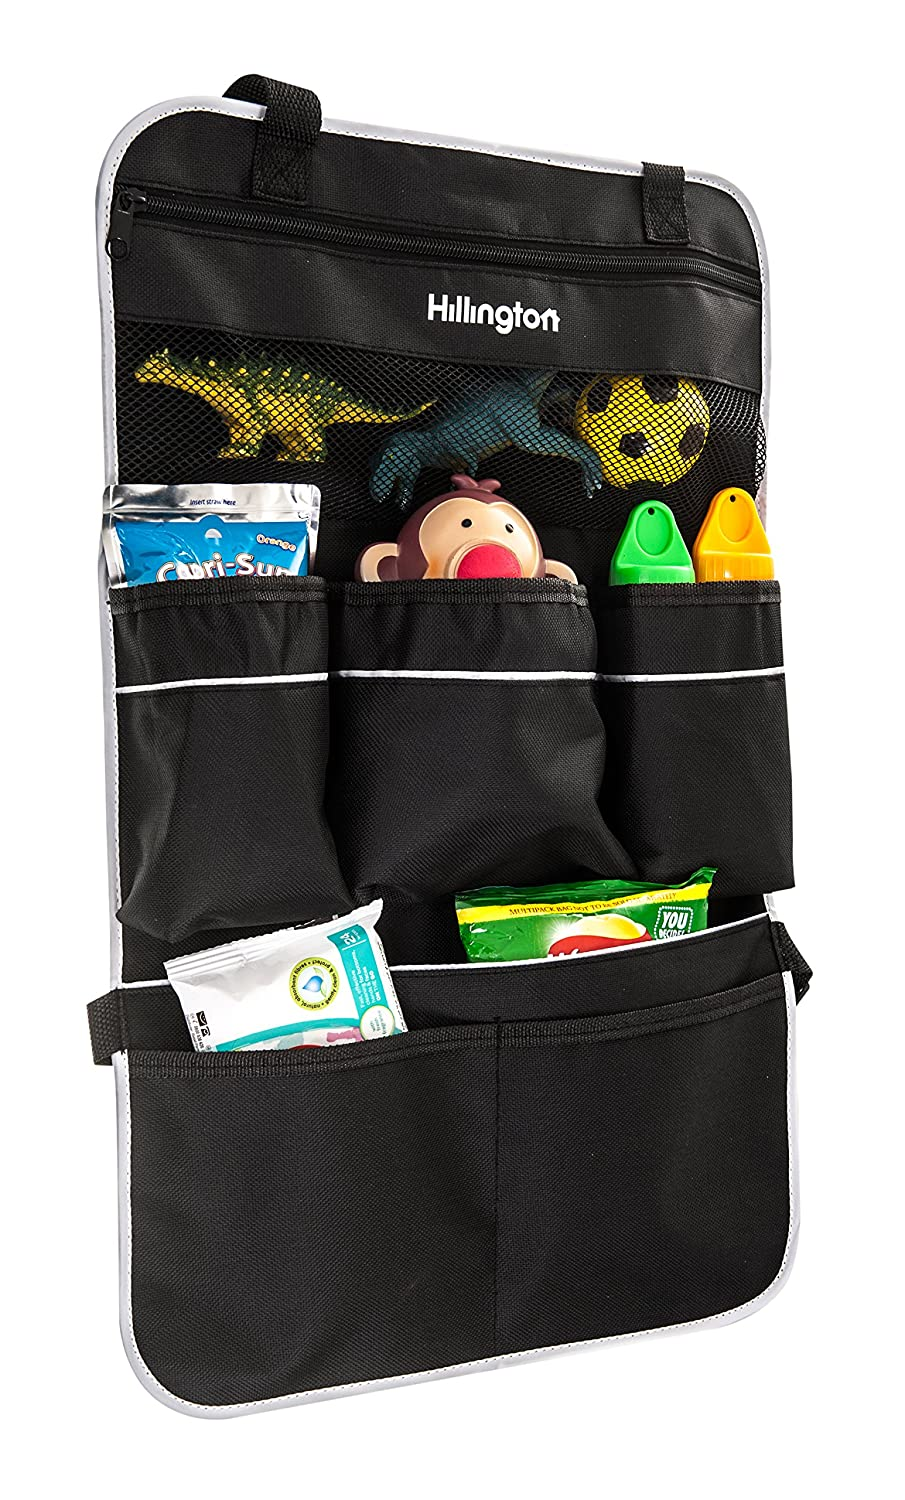 Hillington ® Car Back Seat Organiser - Stylish Universal Car Van Back Seat Carry Caddy with 7 Large and Spacious Storage Pockets - Ideal for Storing Bottles, Maps, Wipes, Snacks, Books, Toys and Travel Essentials